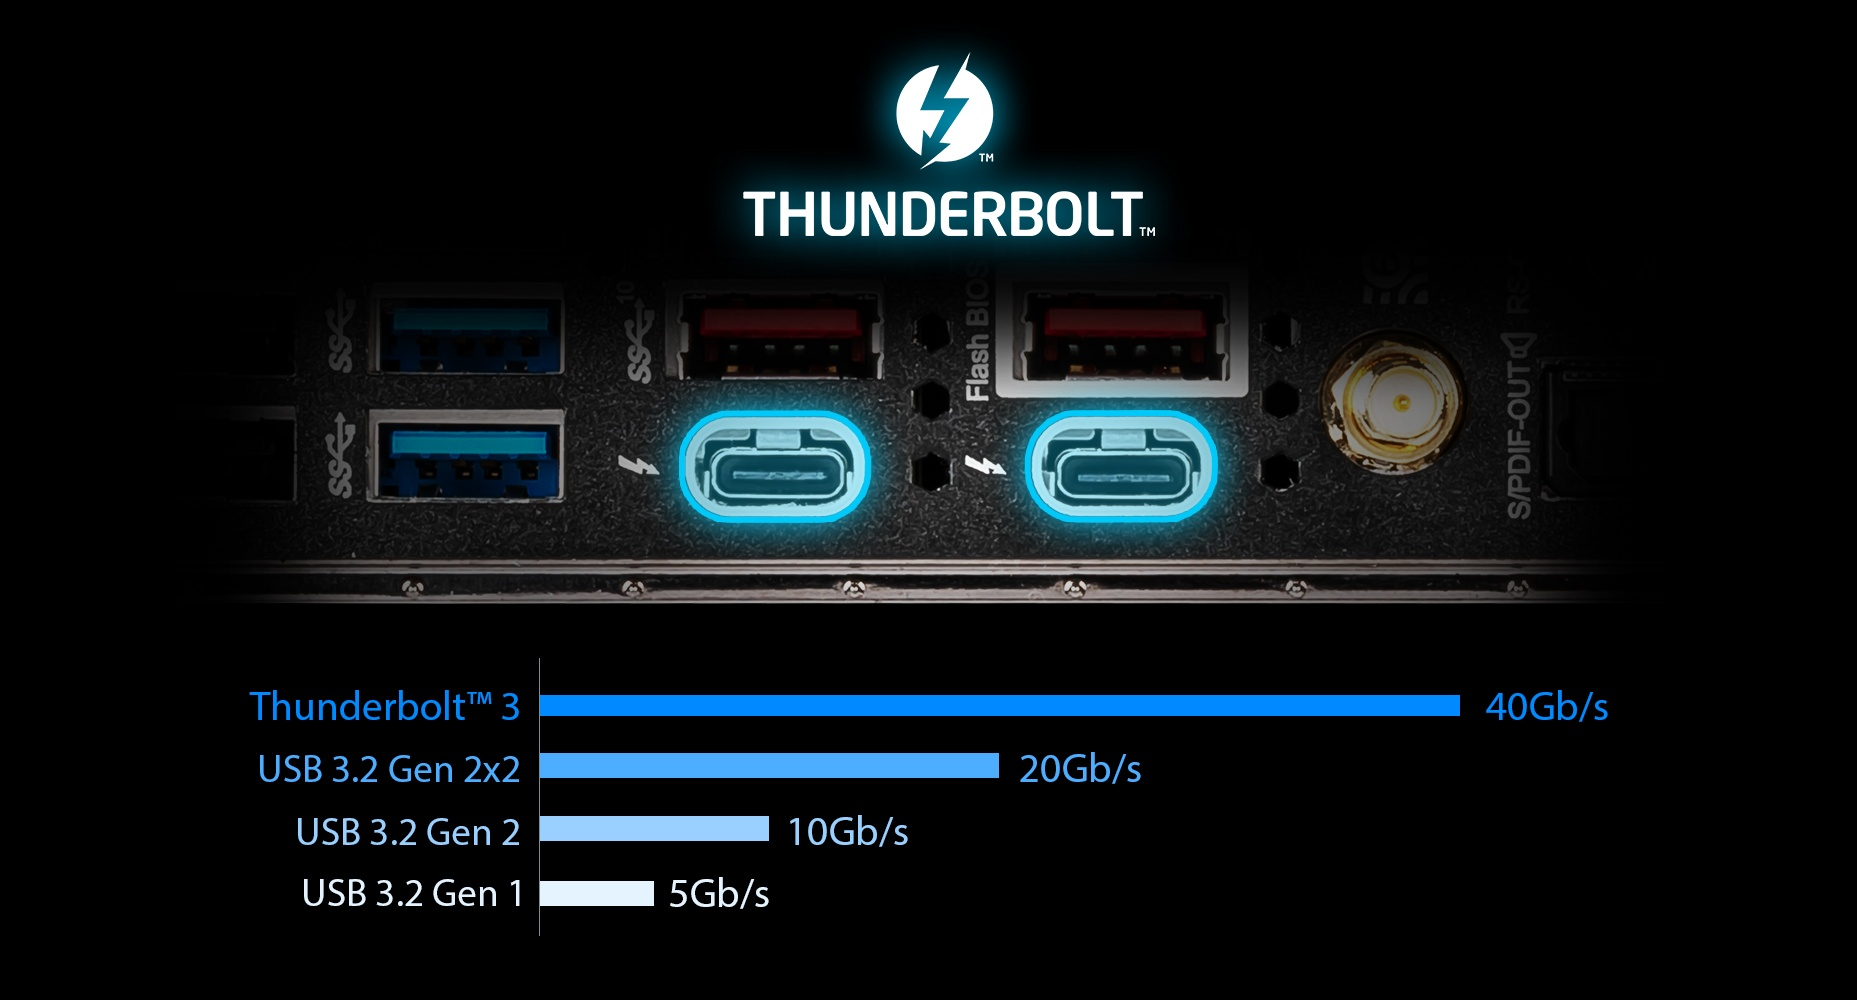 THUNDERBOLT™ 3 PORTS of the motherboard